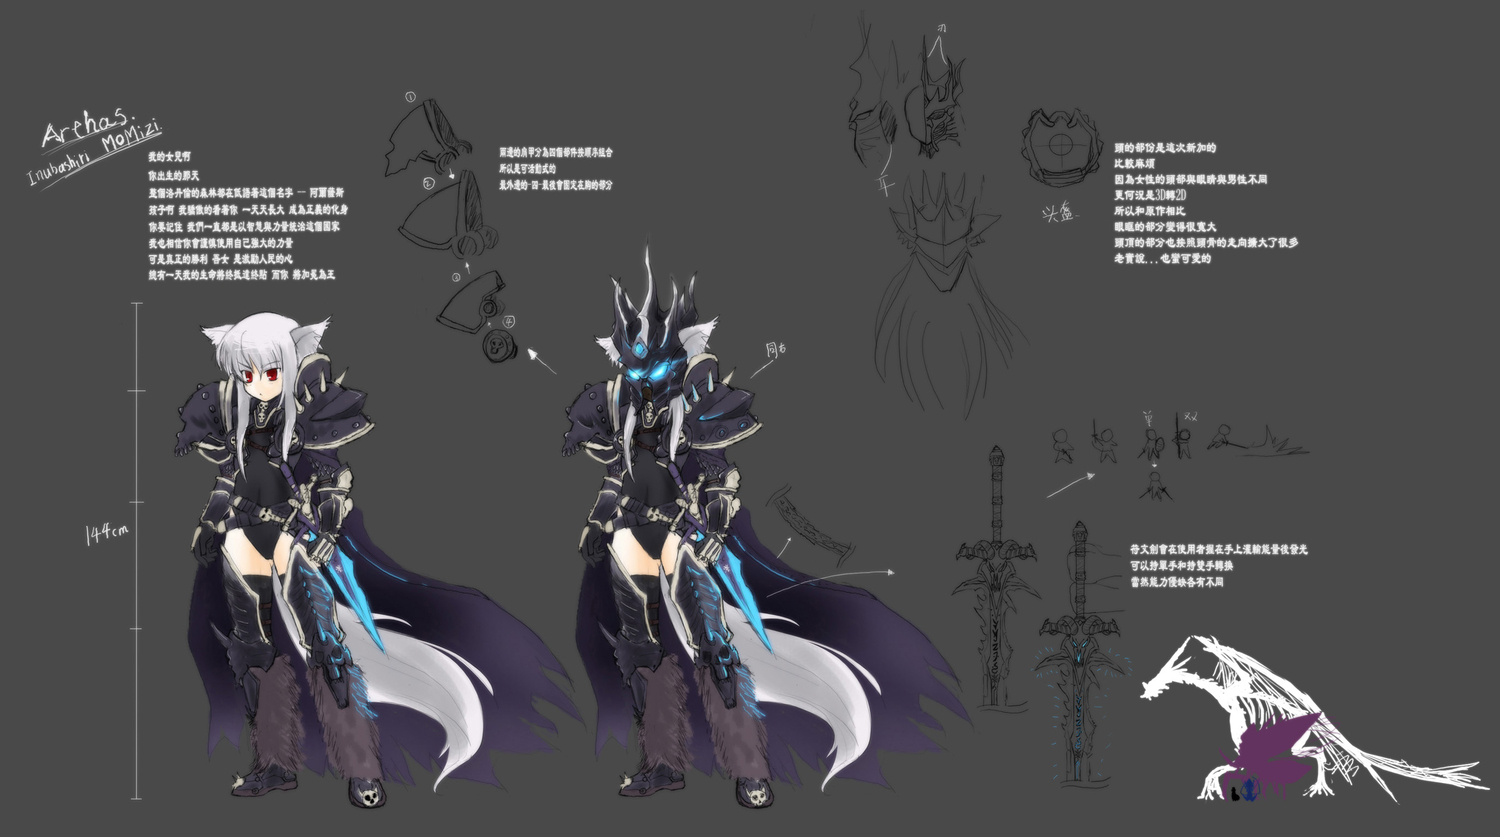 animal_ears armor cape inubashiri_momiji jpeg_artifacts red_eyes tail weapon white_hair wolfgirl world_of_warcraft